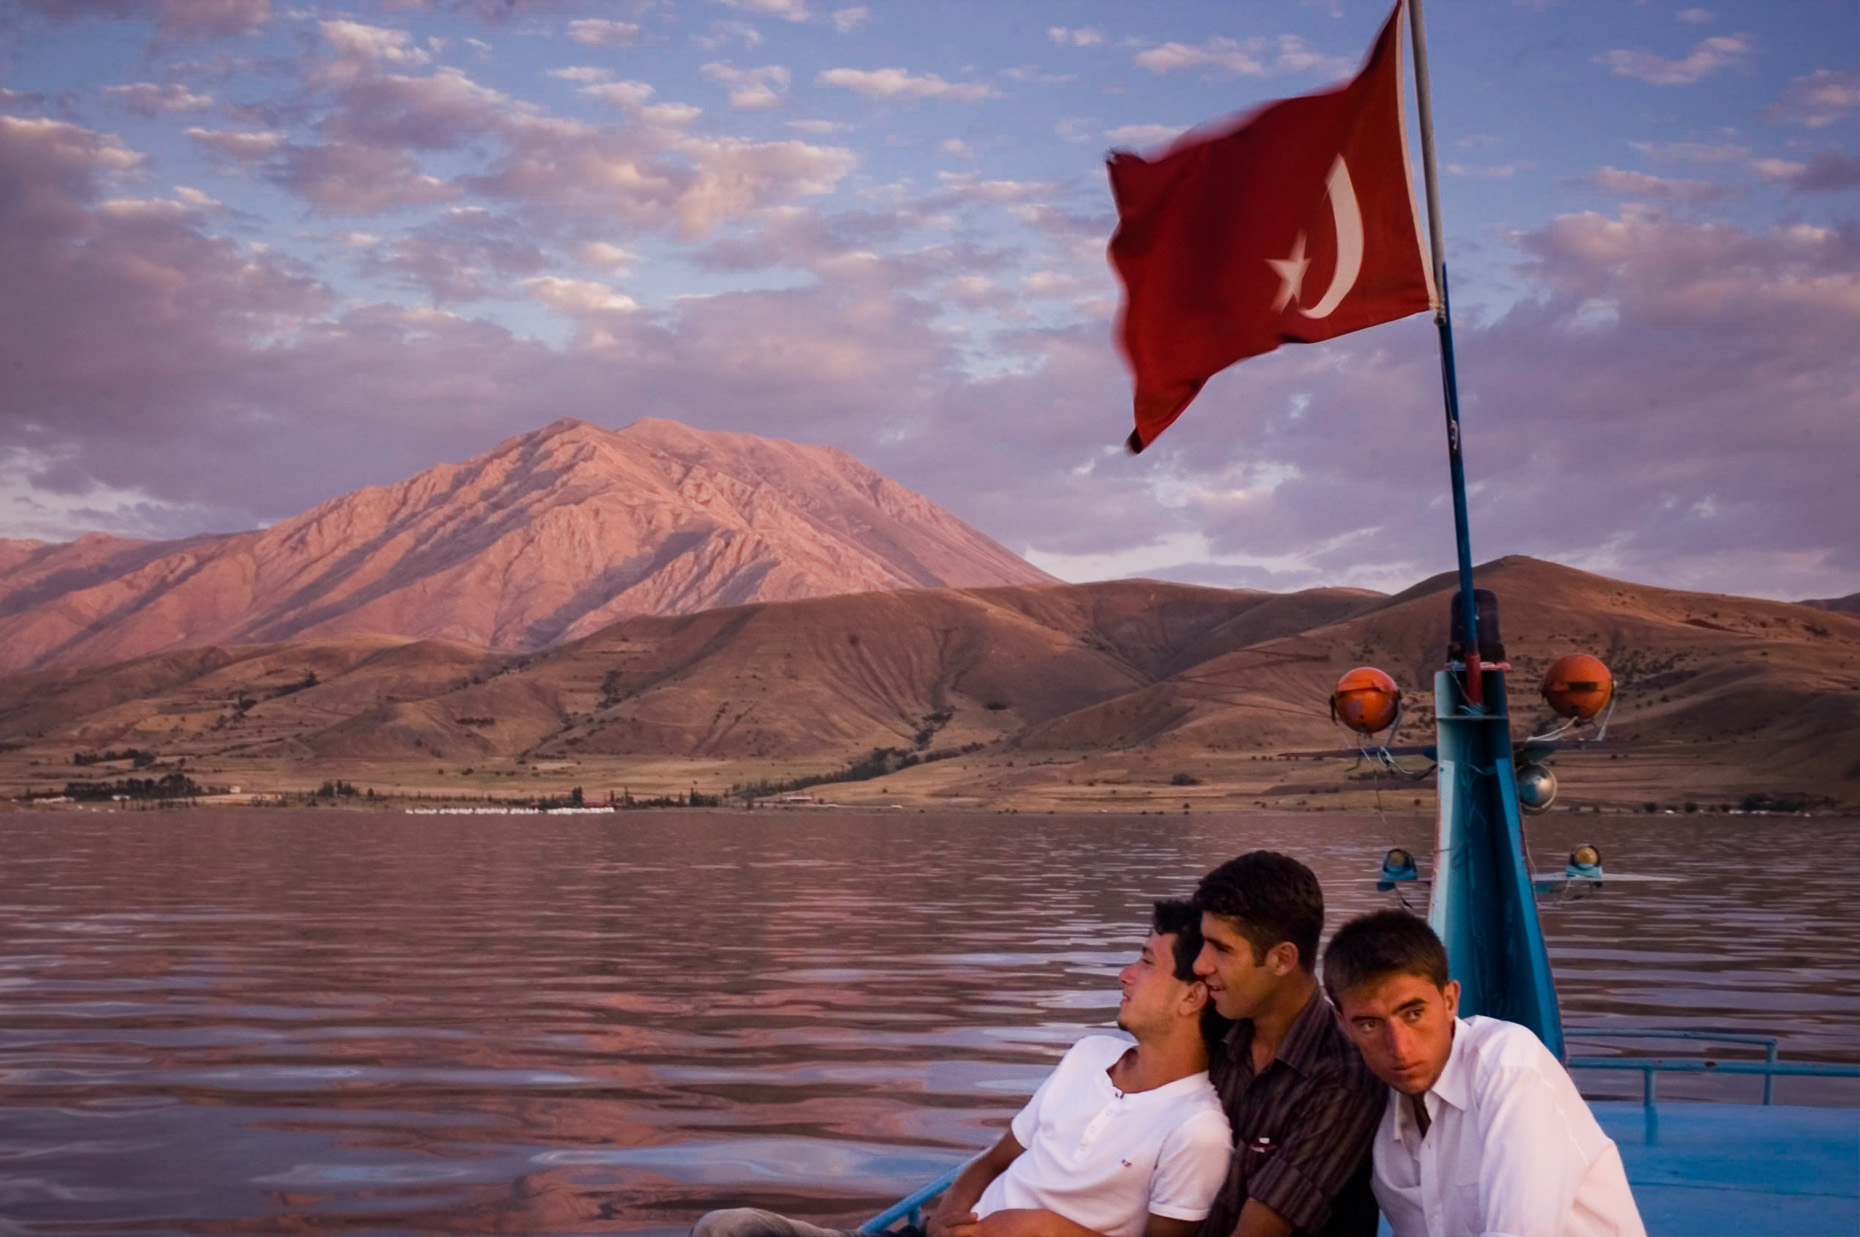 Young Kurdish men on boat on Van Lake under Turkey flag, Akdamar Island Turkey.